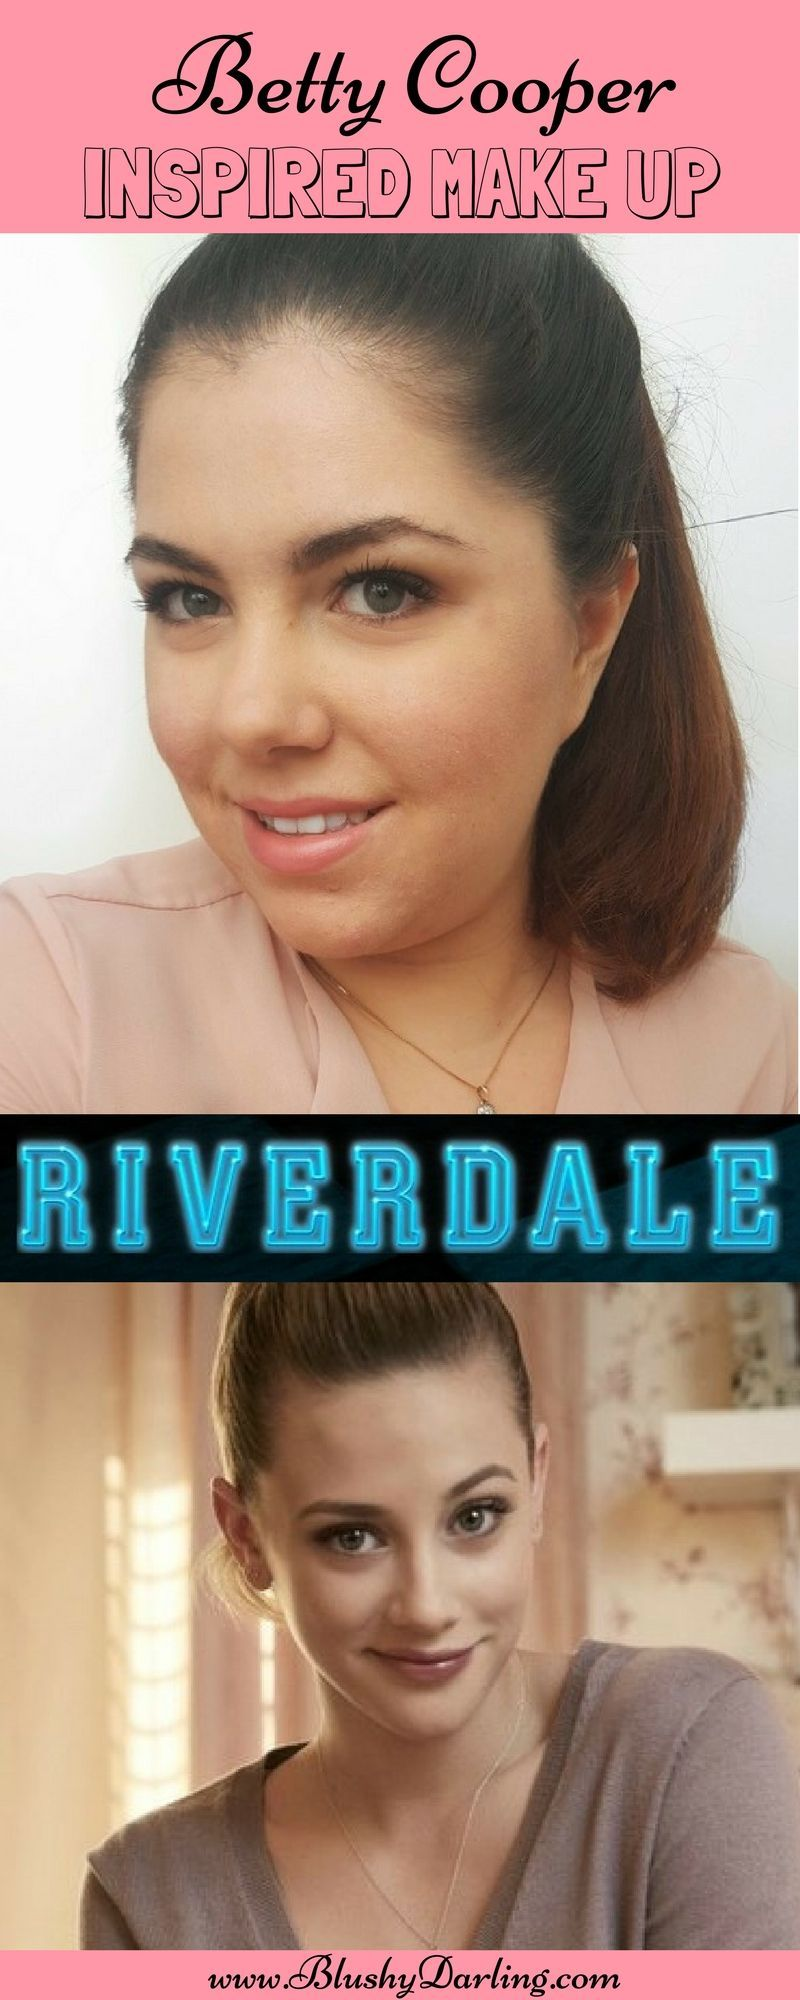 Back To School Betty Cooper From Riverdale Inspired Look Using All Drugstore Makeup Products Makeuptutoria Betty Cooper Back To School Makeup Best Makeup Tips